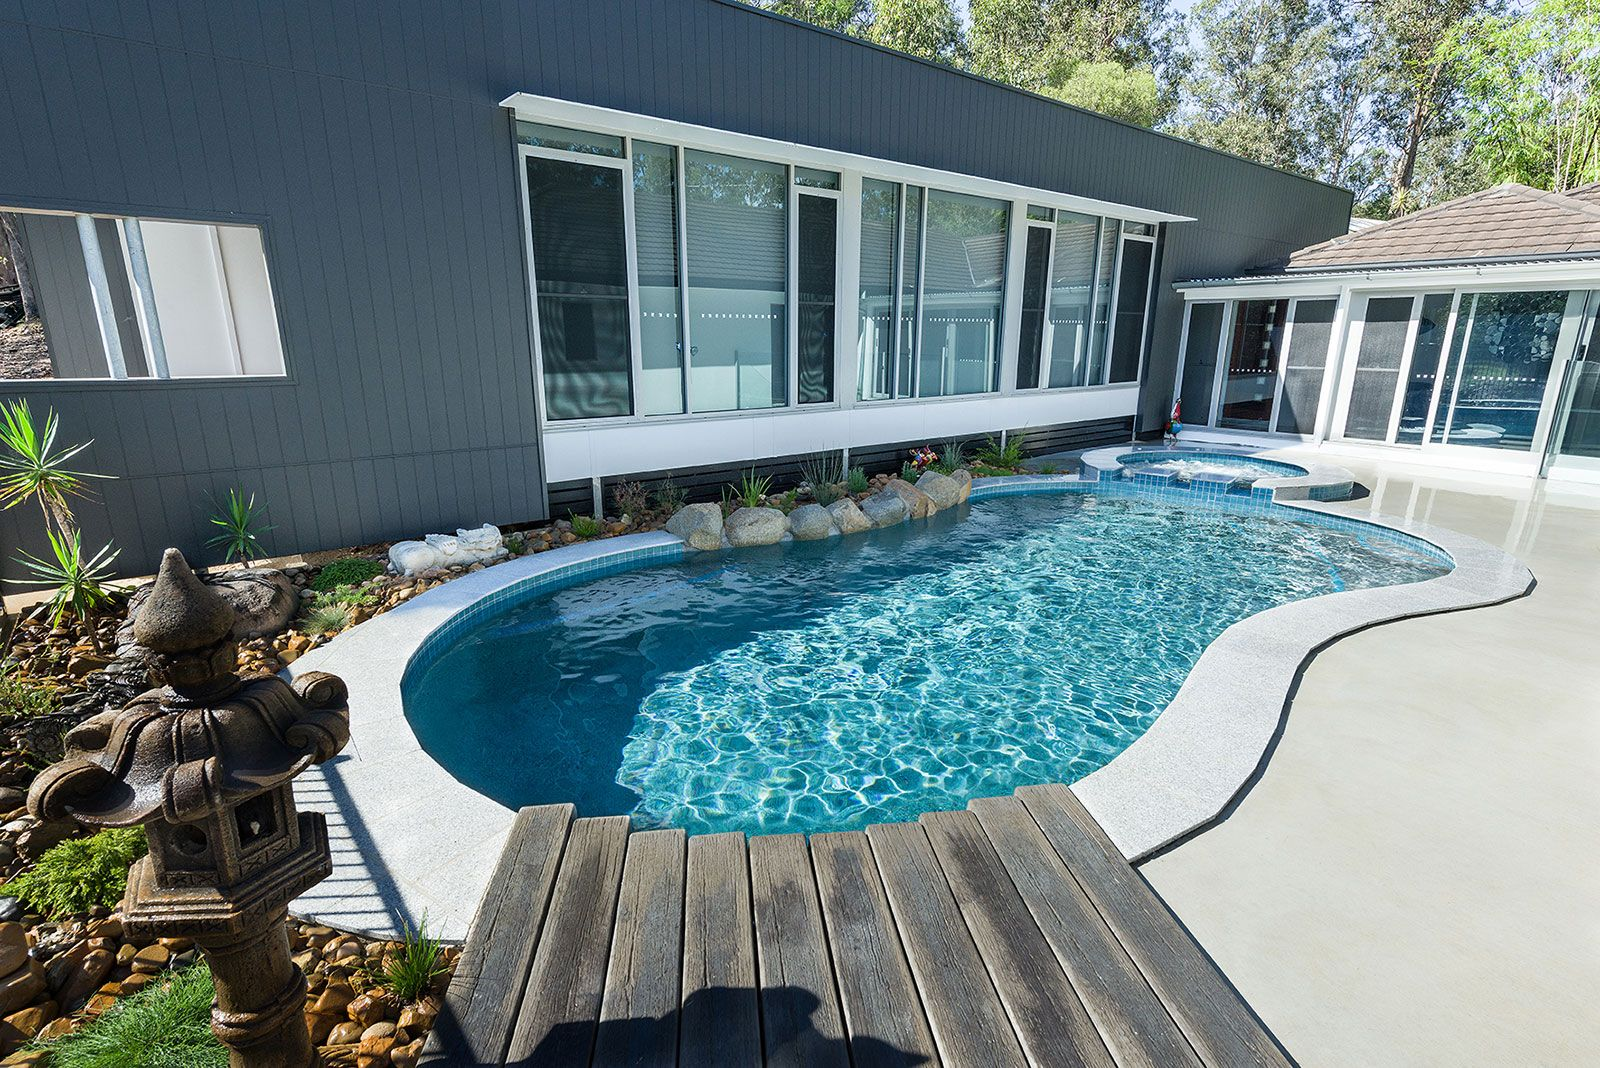 Swimming Pool Renovations Photo Gallery - Melbourne Pool Renovations ...